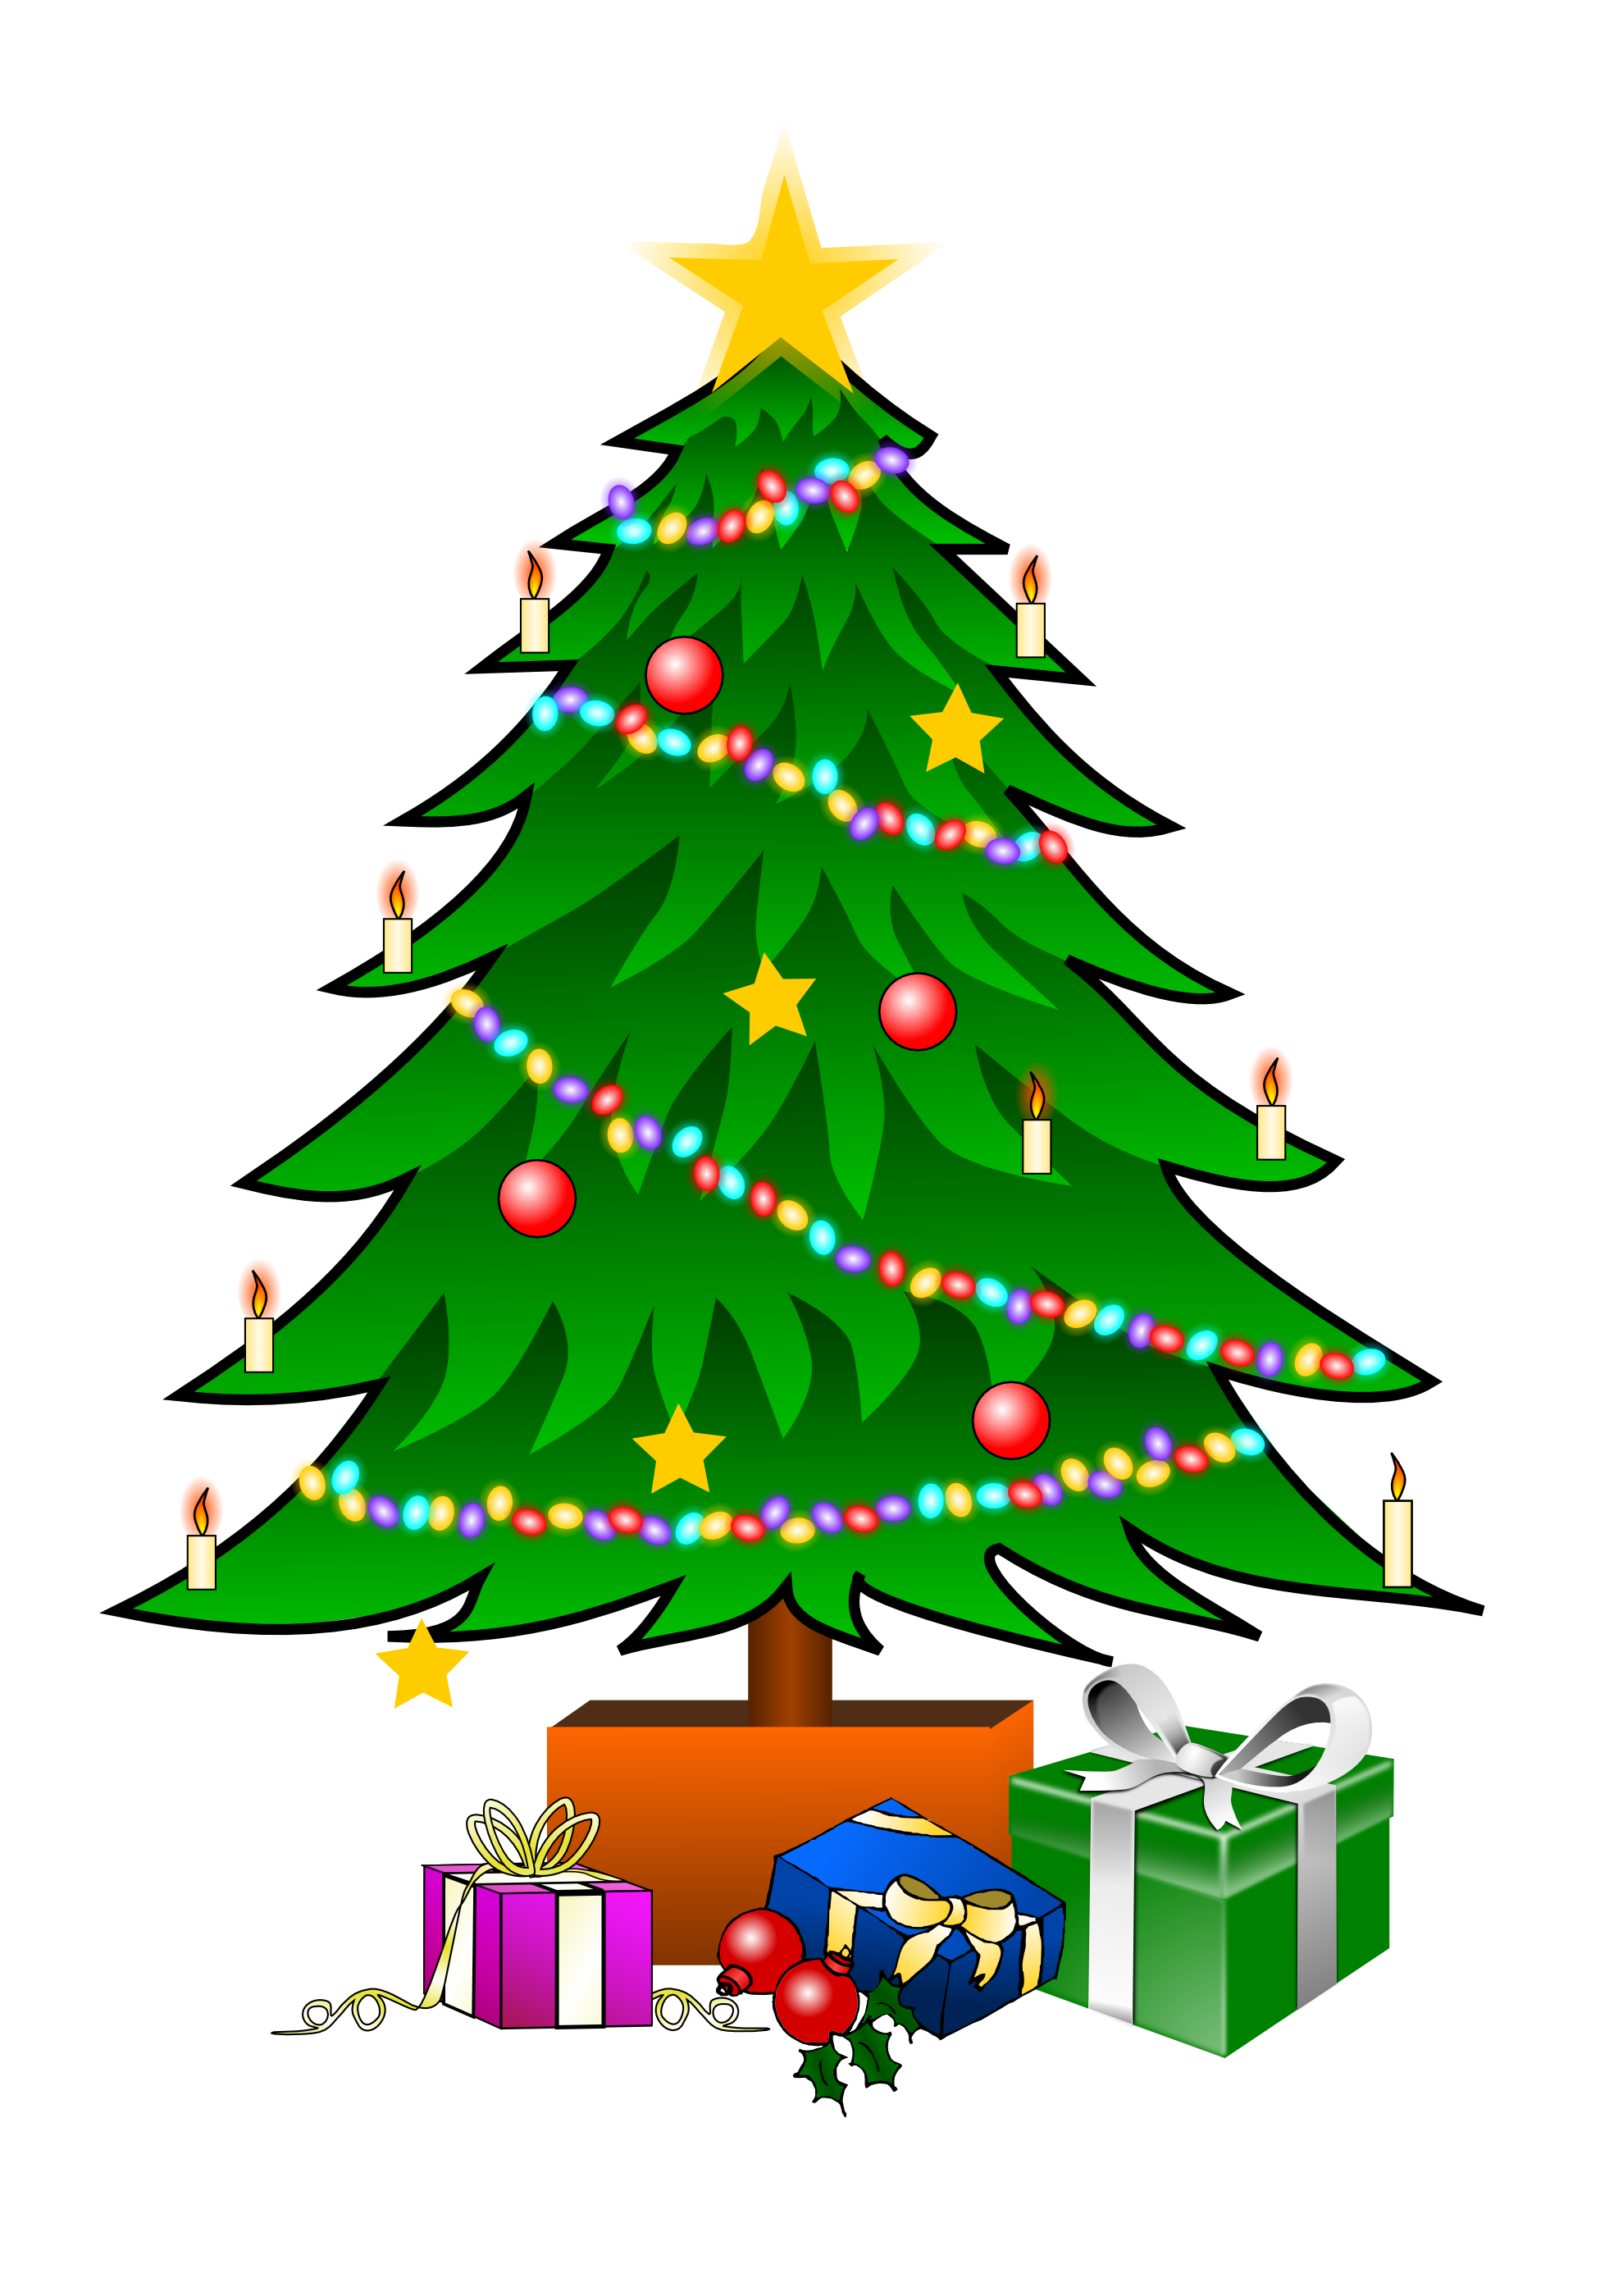 Christmas tree vector png. Transparent pictures free icons